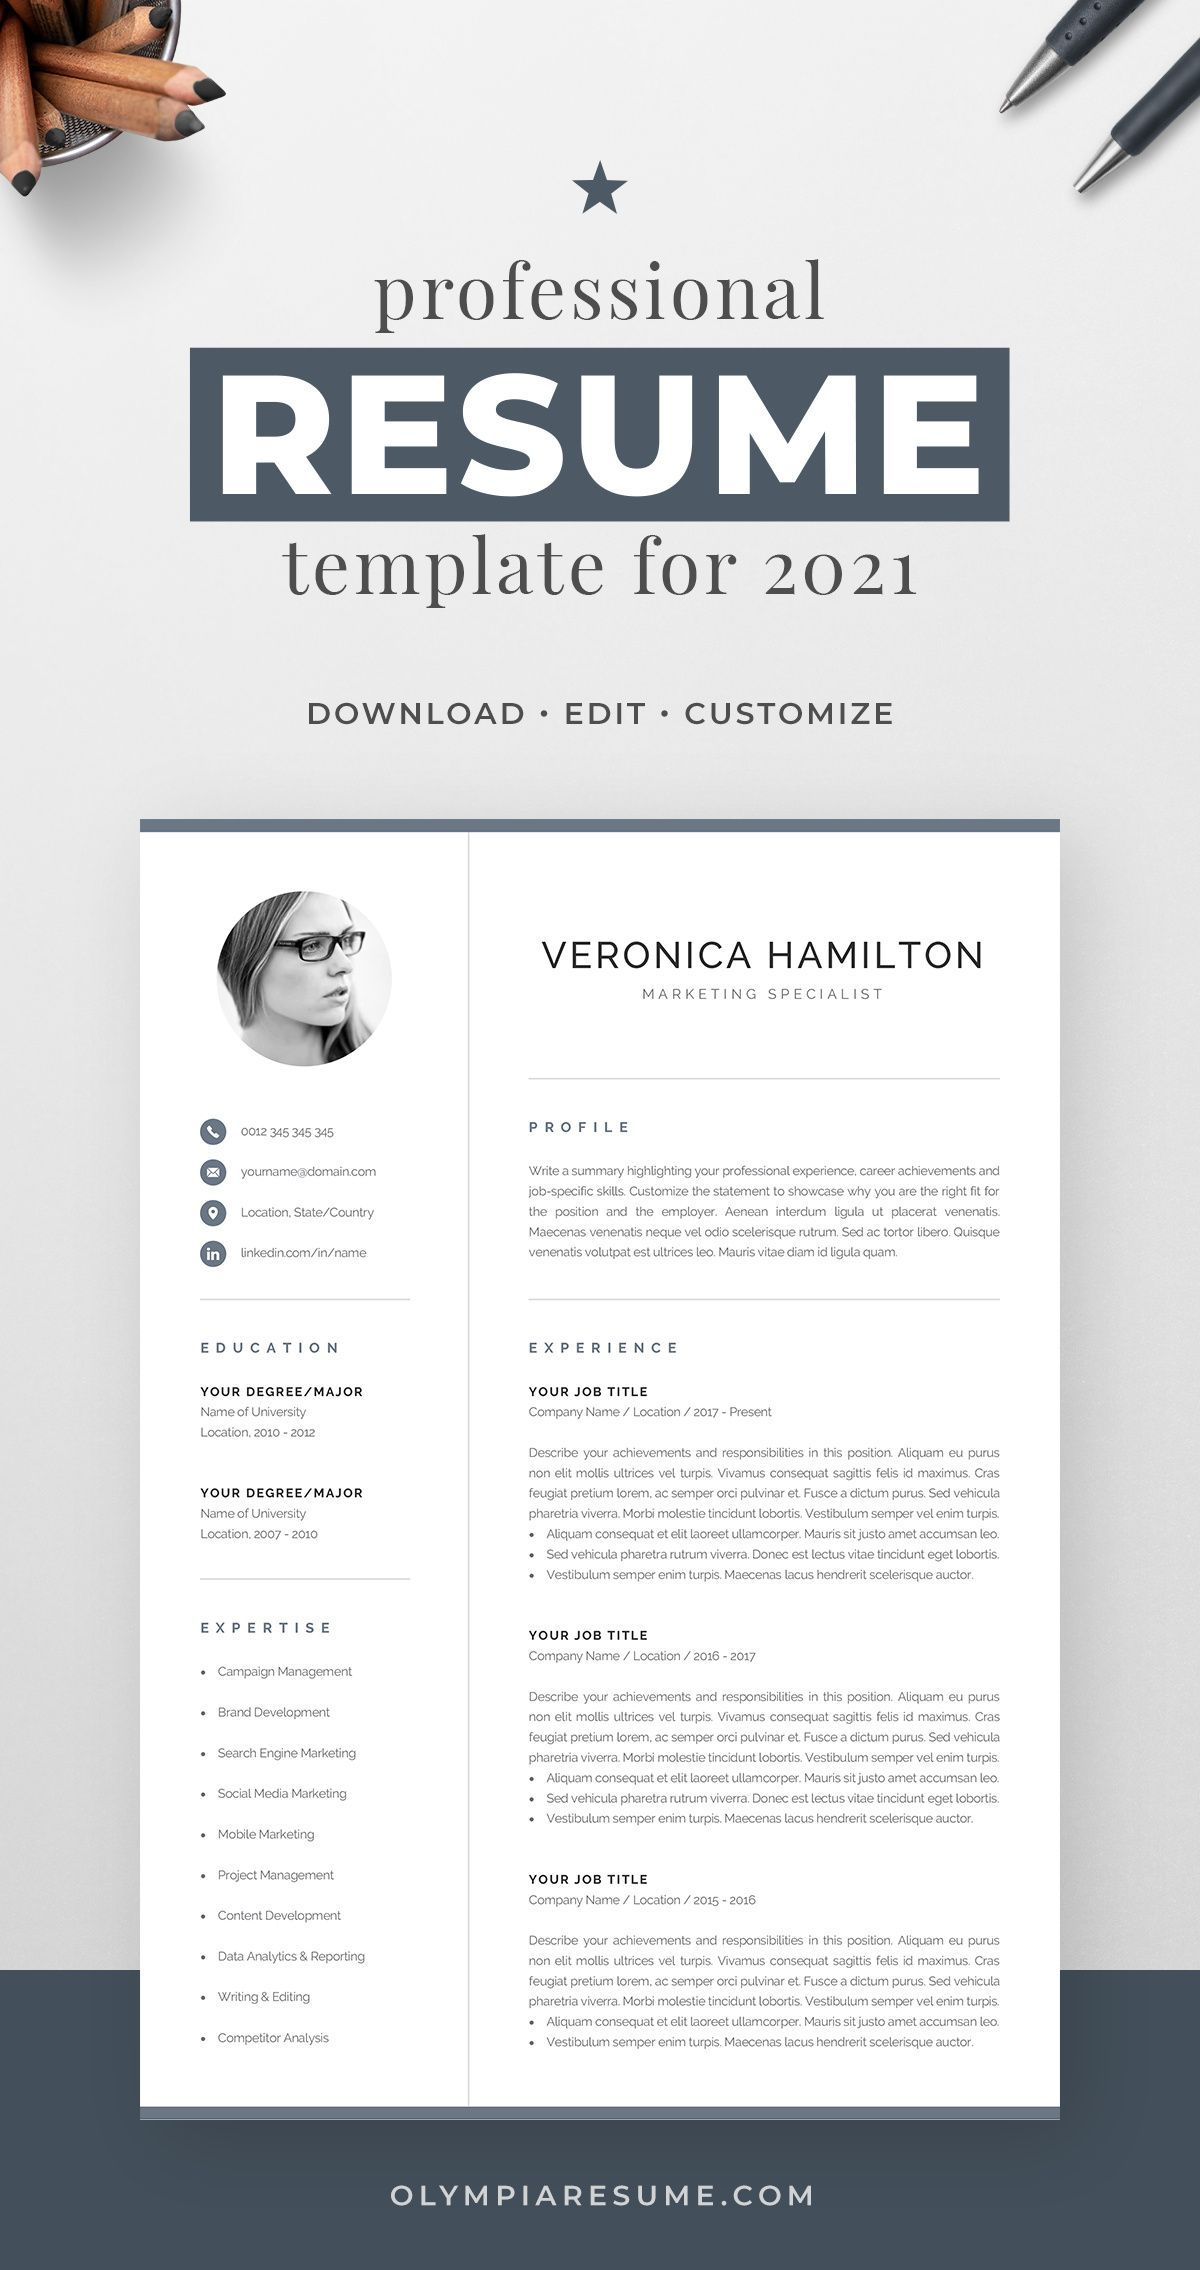 Professional Resume Template for 2021 Modern CV Template with